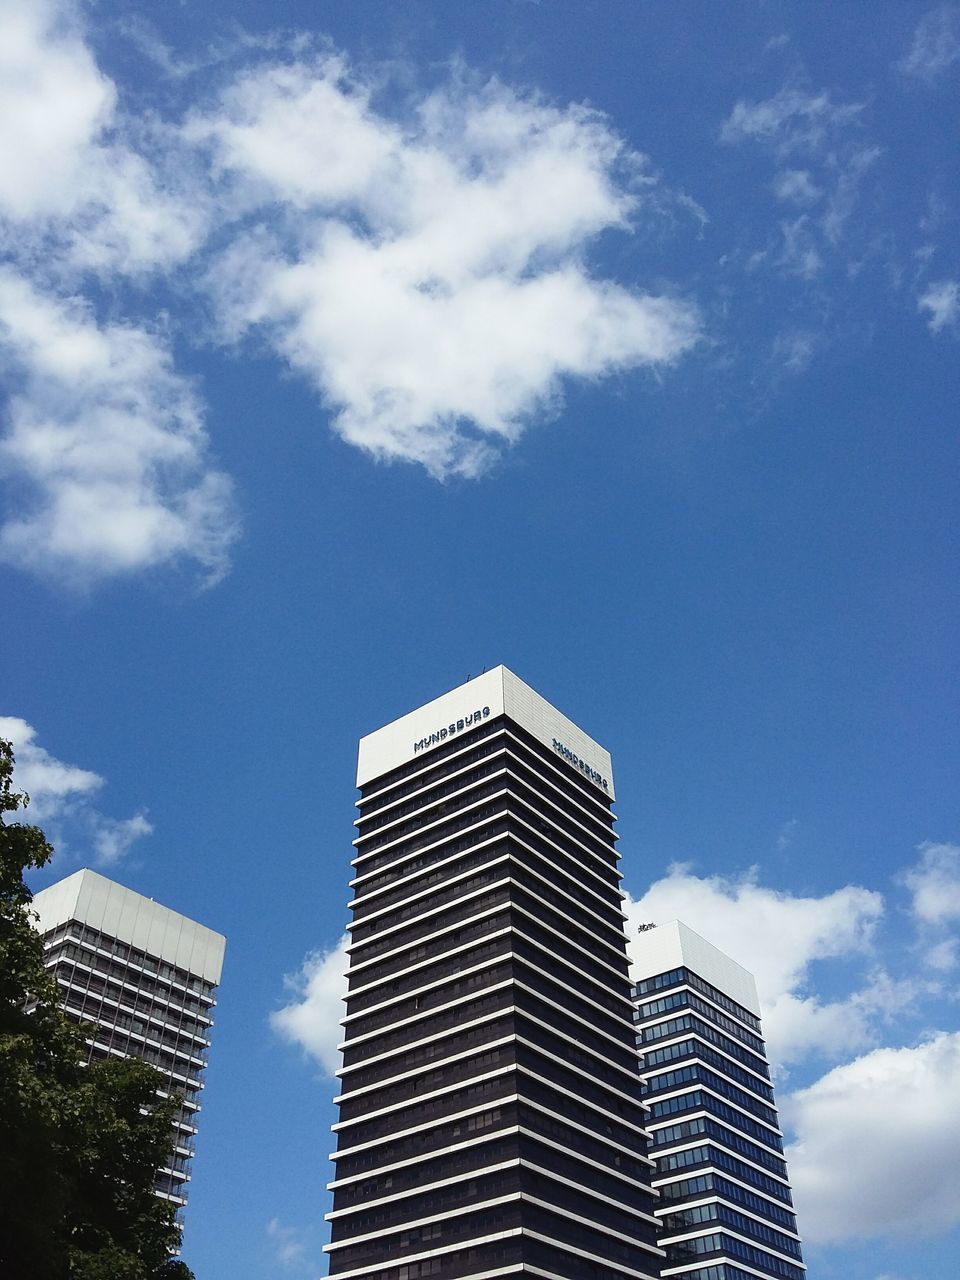 LOW ANGLE VIEW OF MODERN OFFICE BUILDING AGAINST SKY